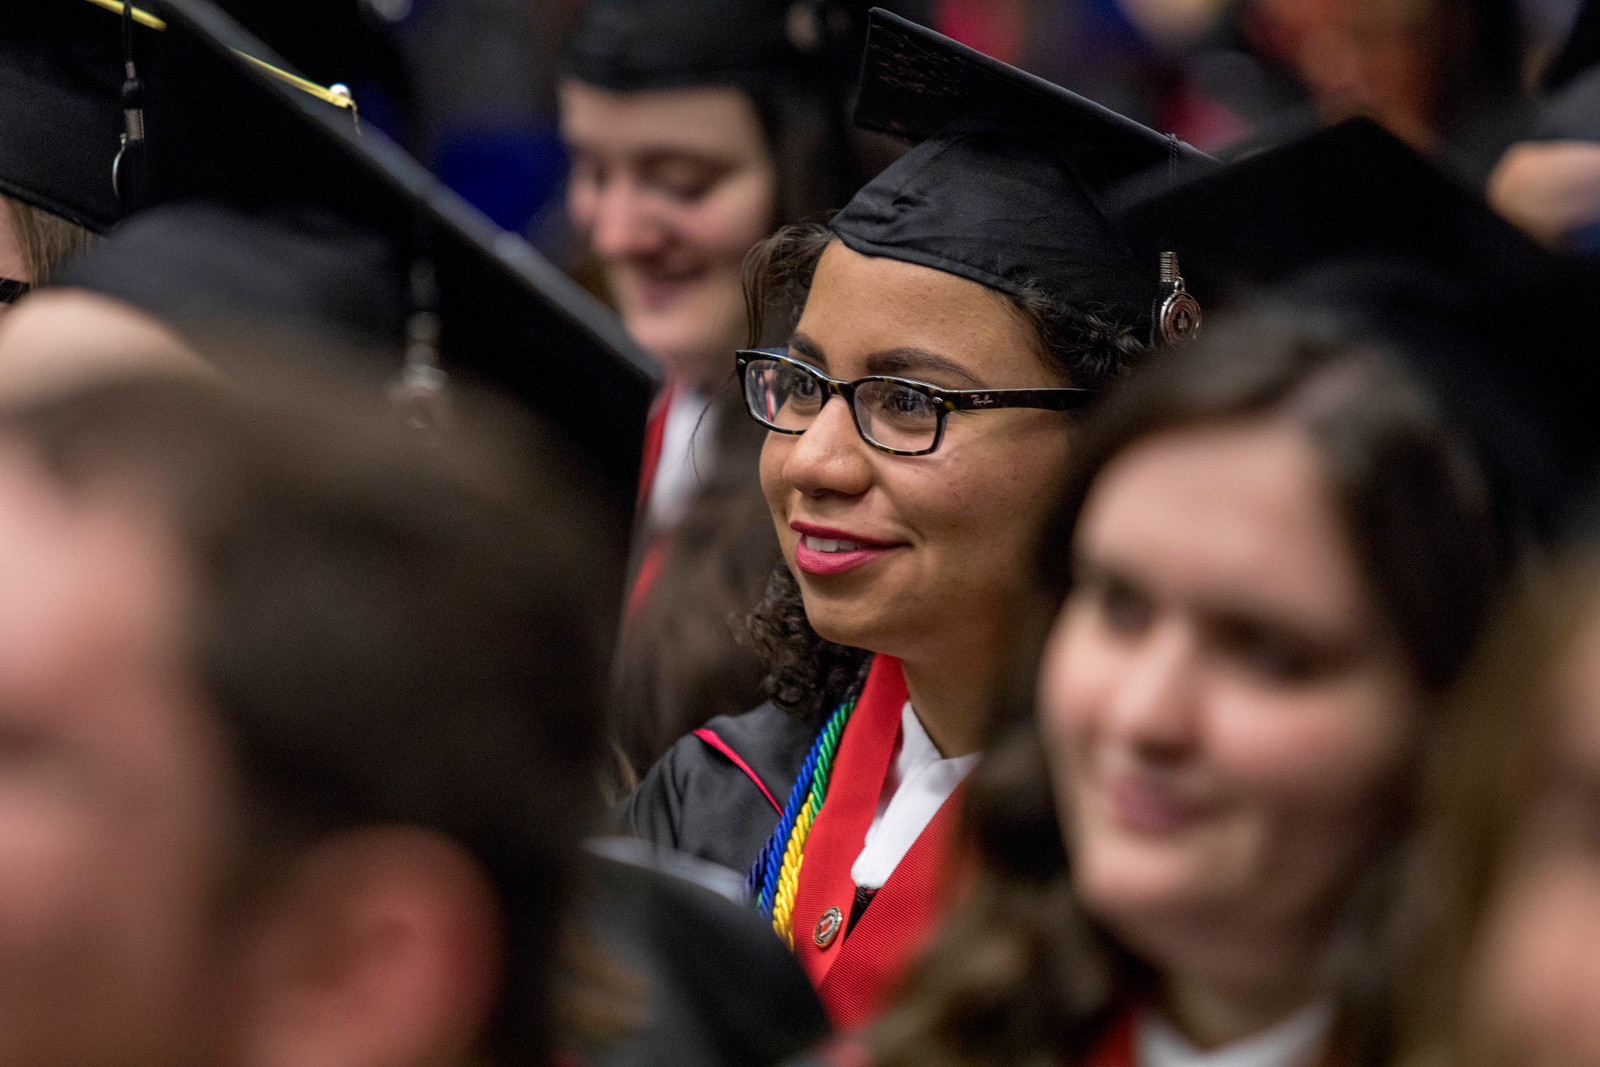 TUG Students Commencement May 2017